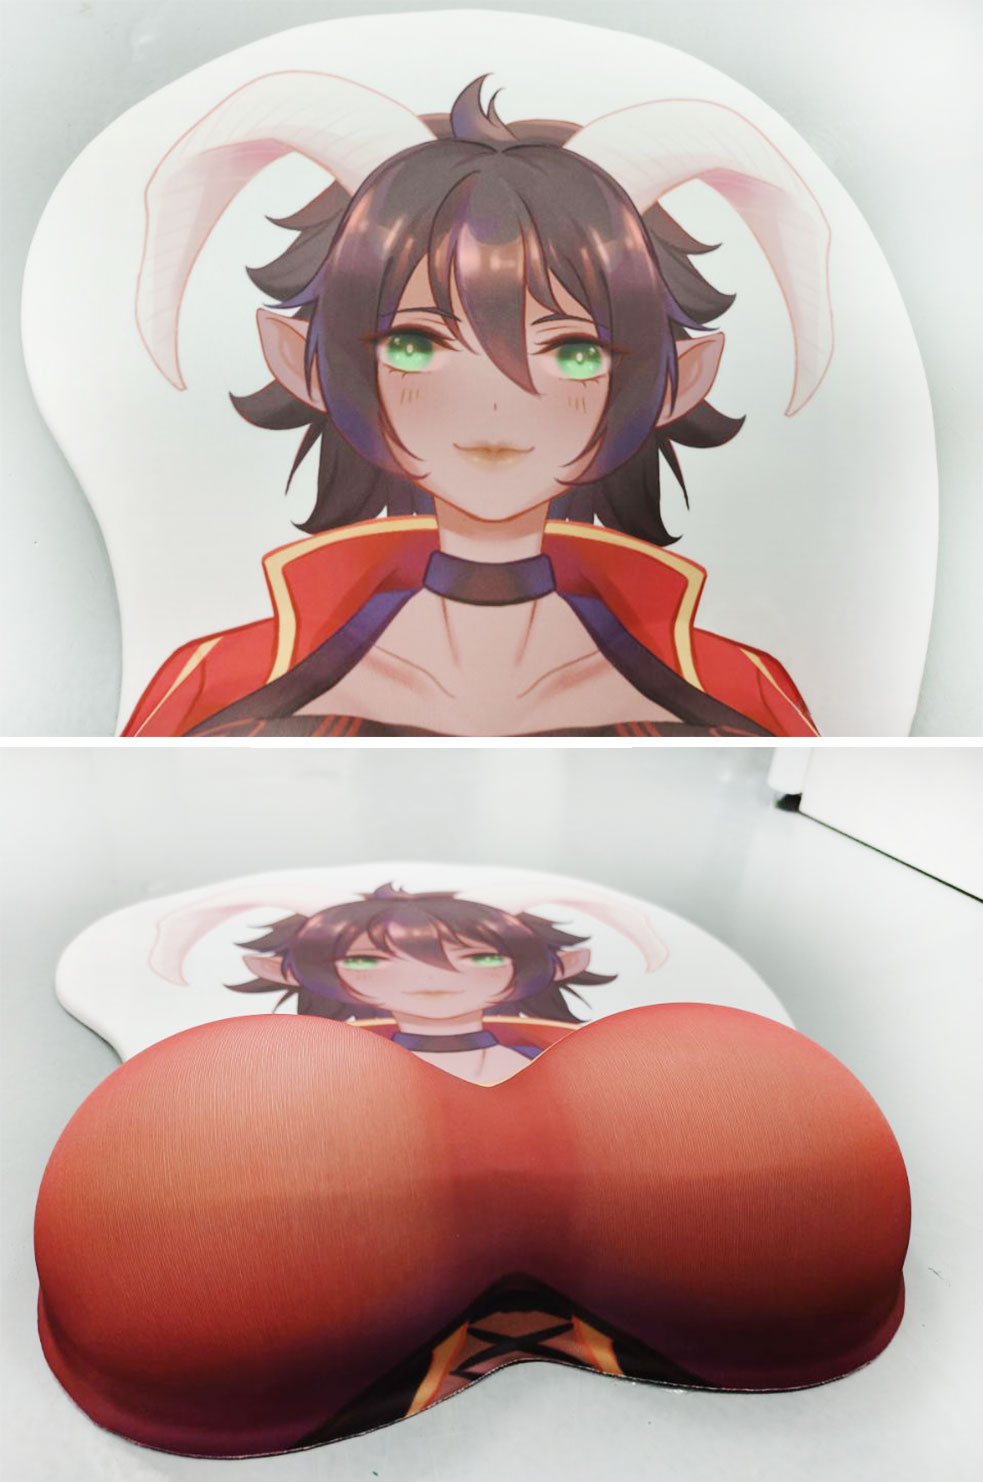 fischl life size oppai mousepad 6635 - Anime Mousepads